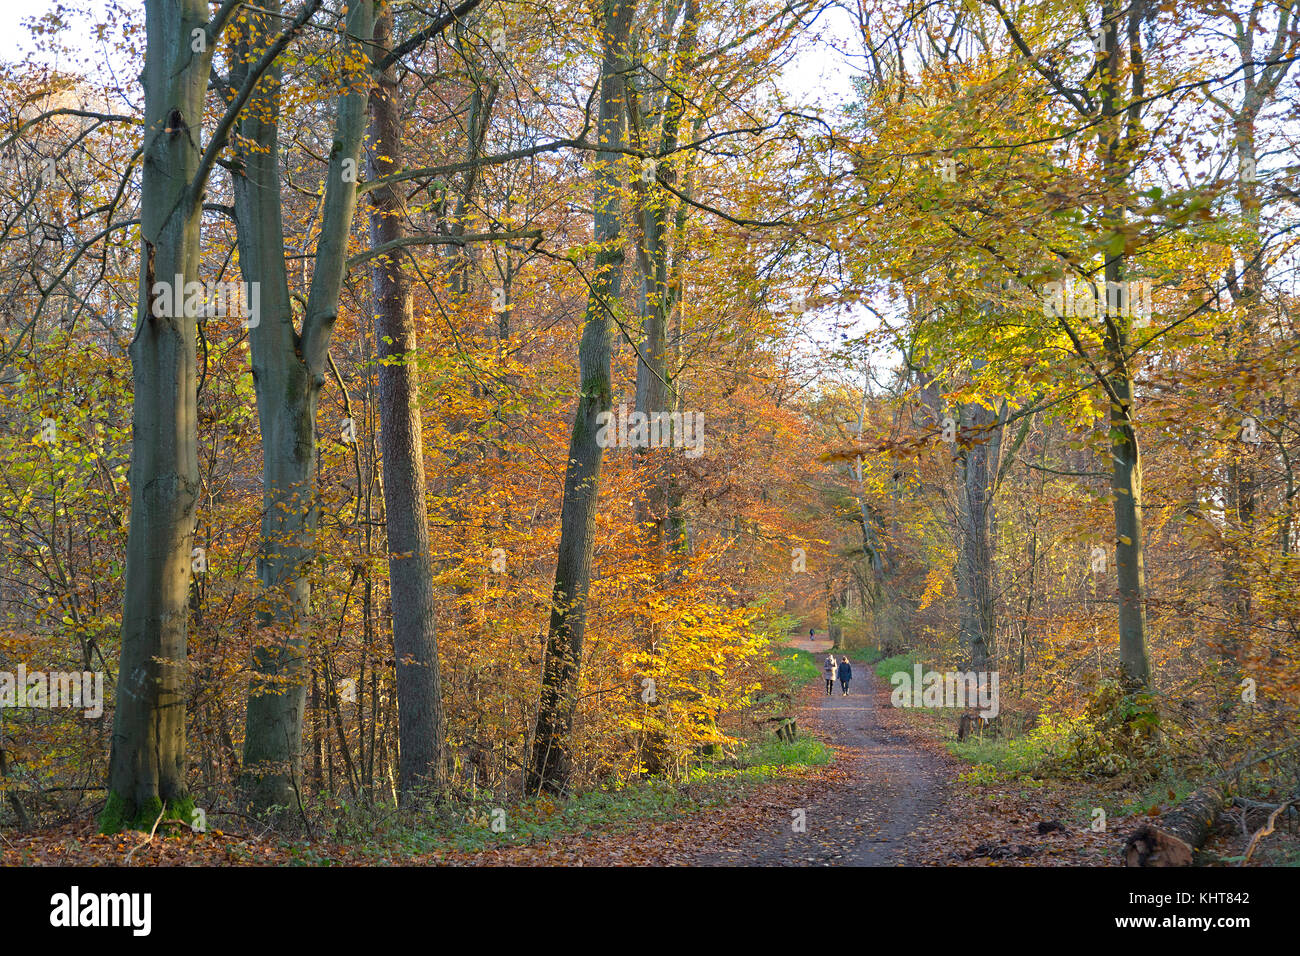 forest in autumn, Lueneburg, Lower Saxony, Germany - Stock Image